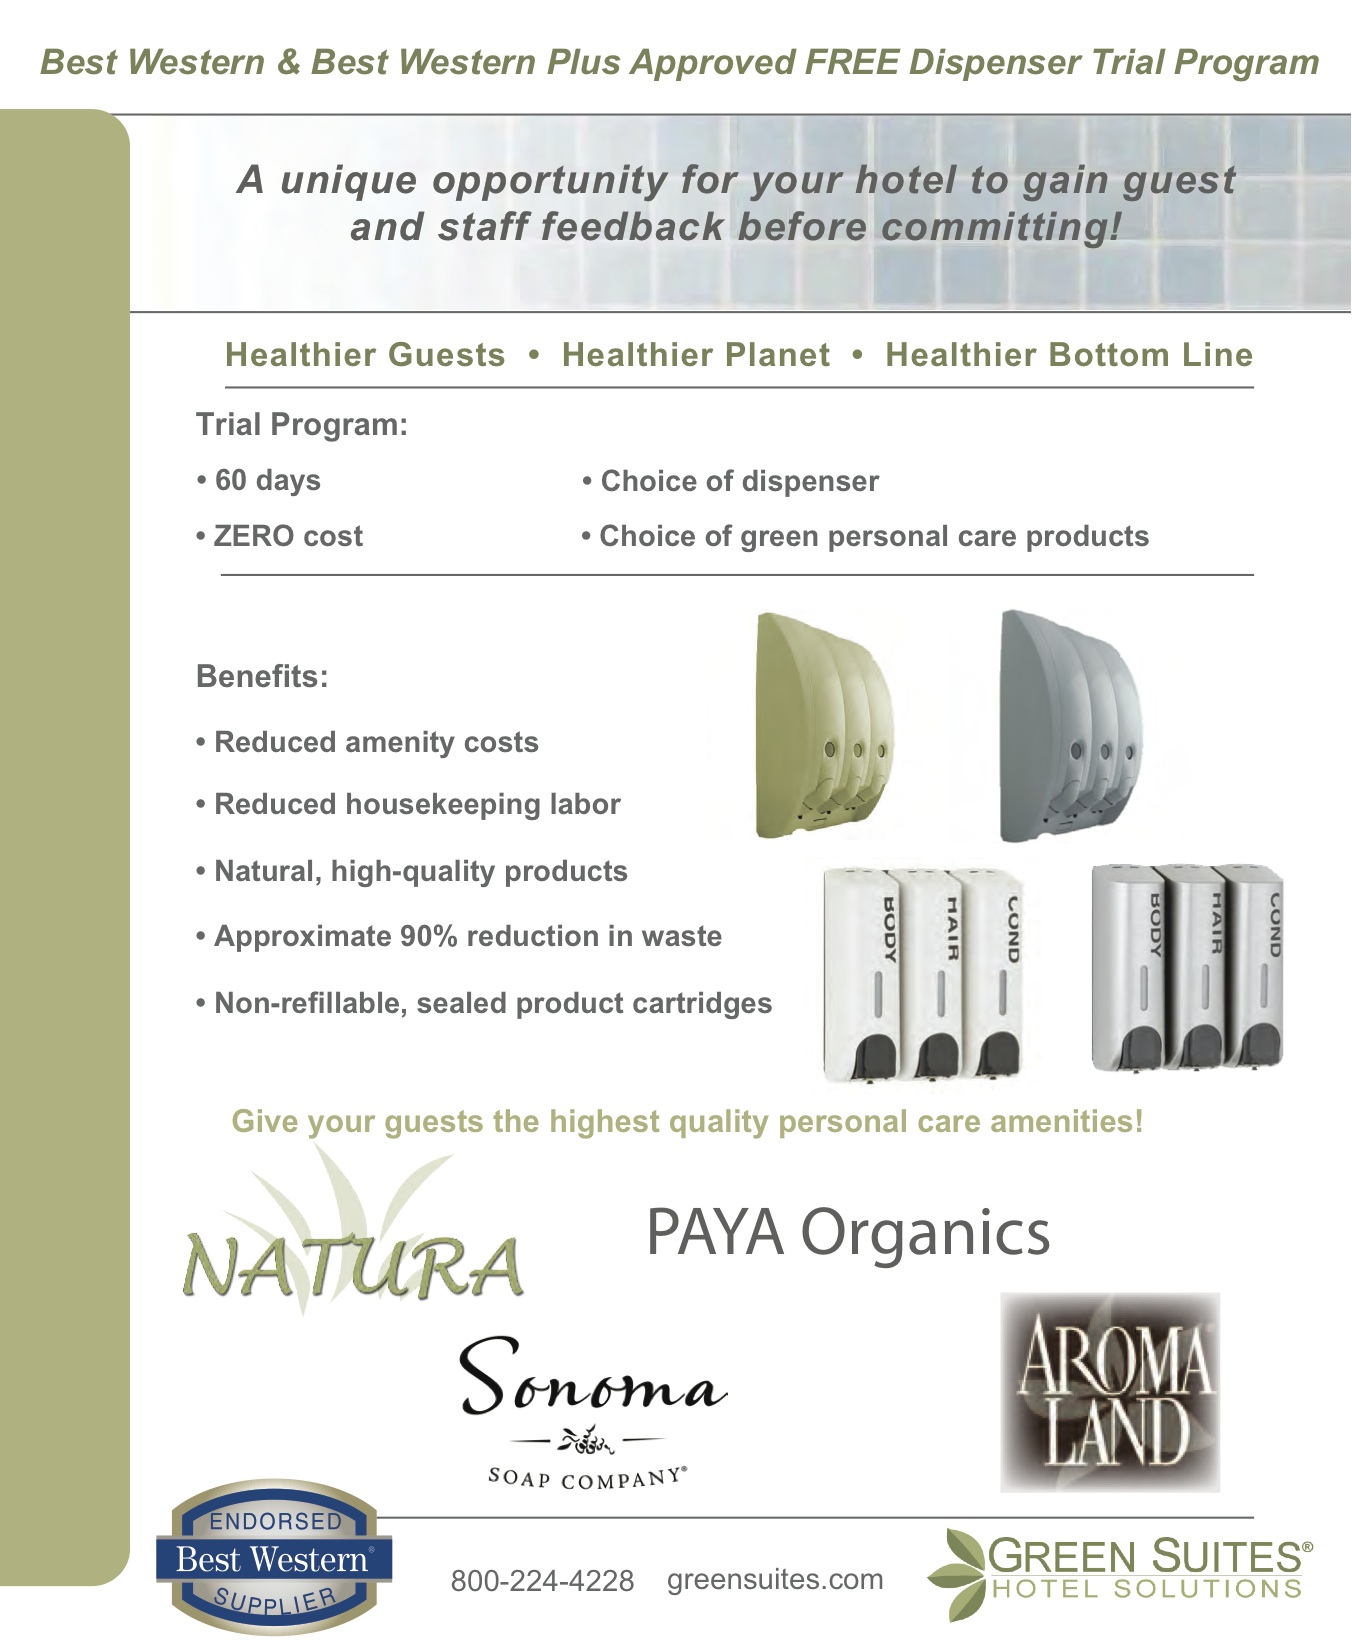 BEFORE: EcoSense Flyer   Original design lacked focus and clarity; supplied by Green Suites Hotel Solutions.